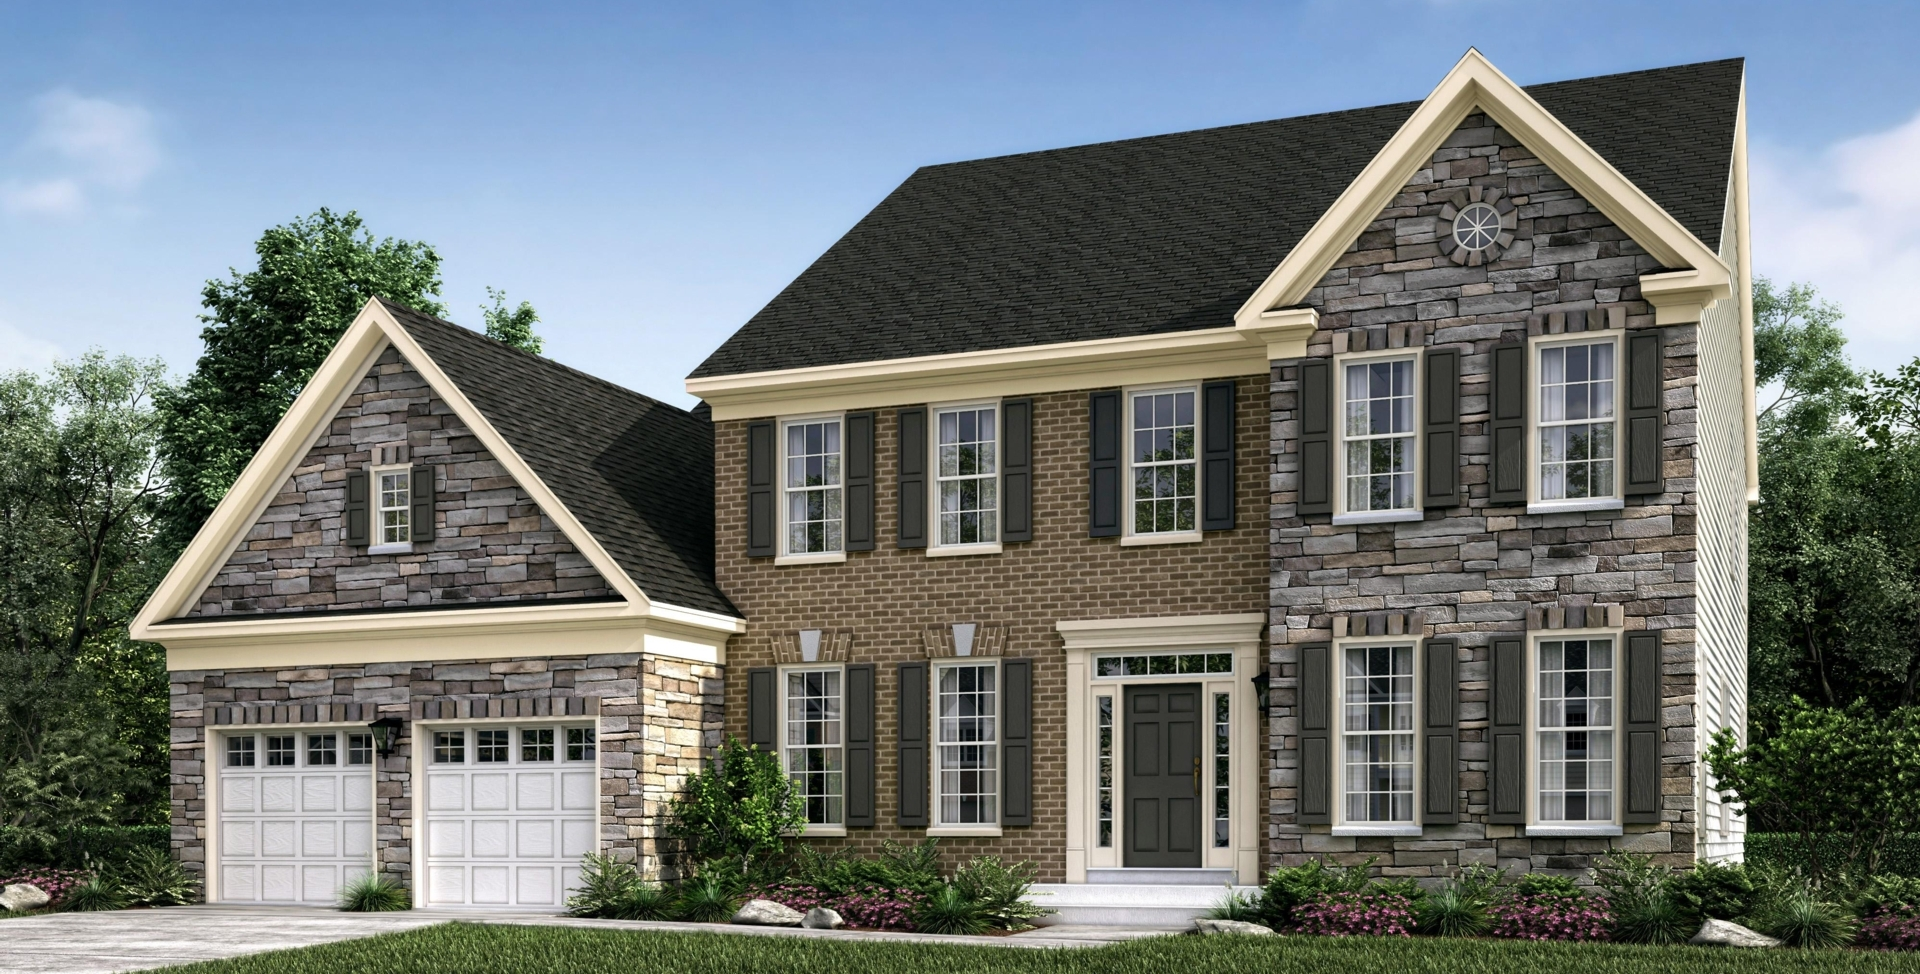 The Villages Of Savannah Prince George S County County